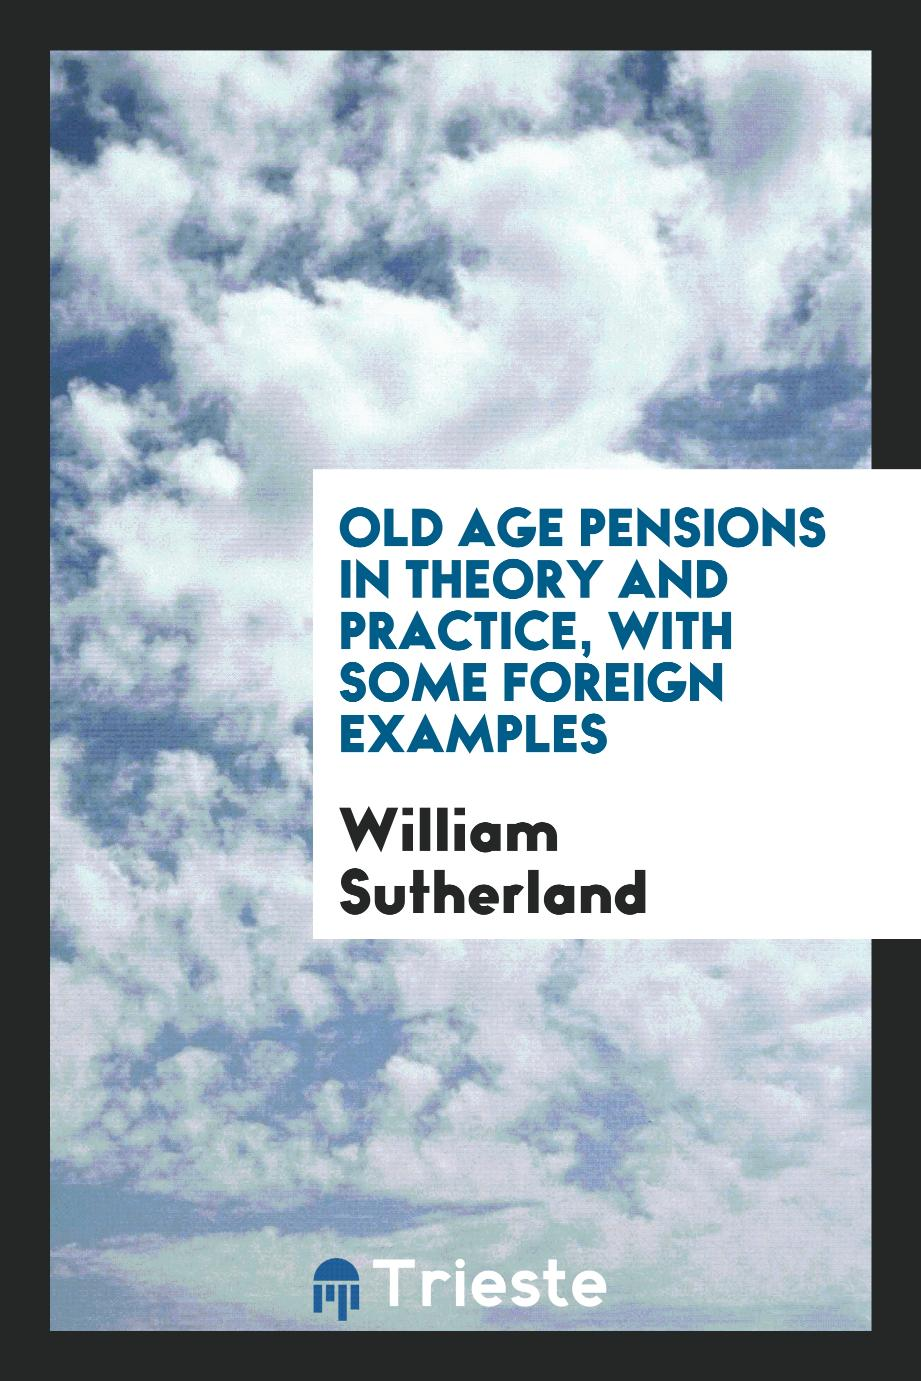 William Sutherland - Old age pensions in theory and practice, with some foreign examples